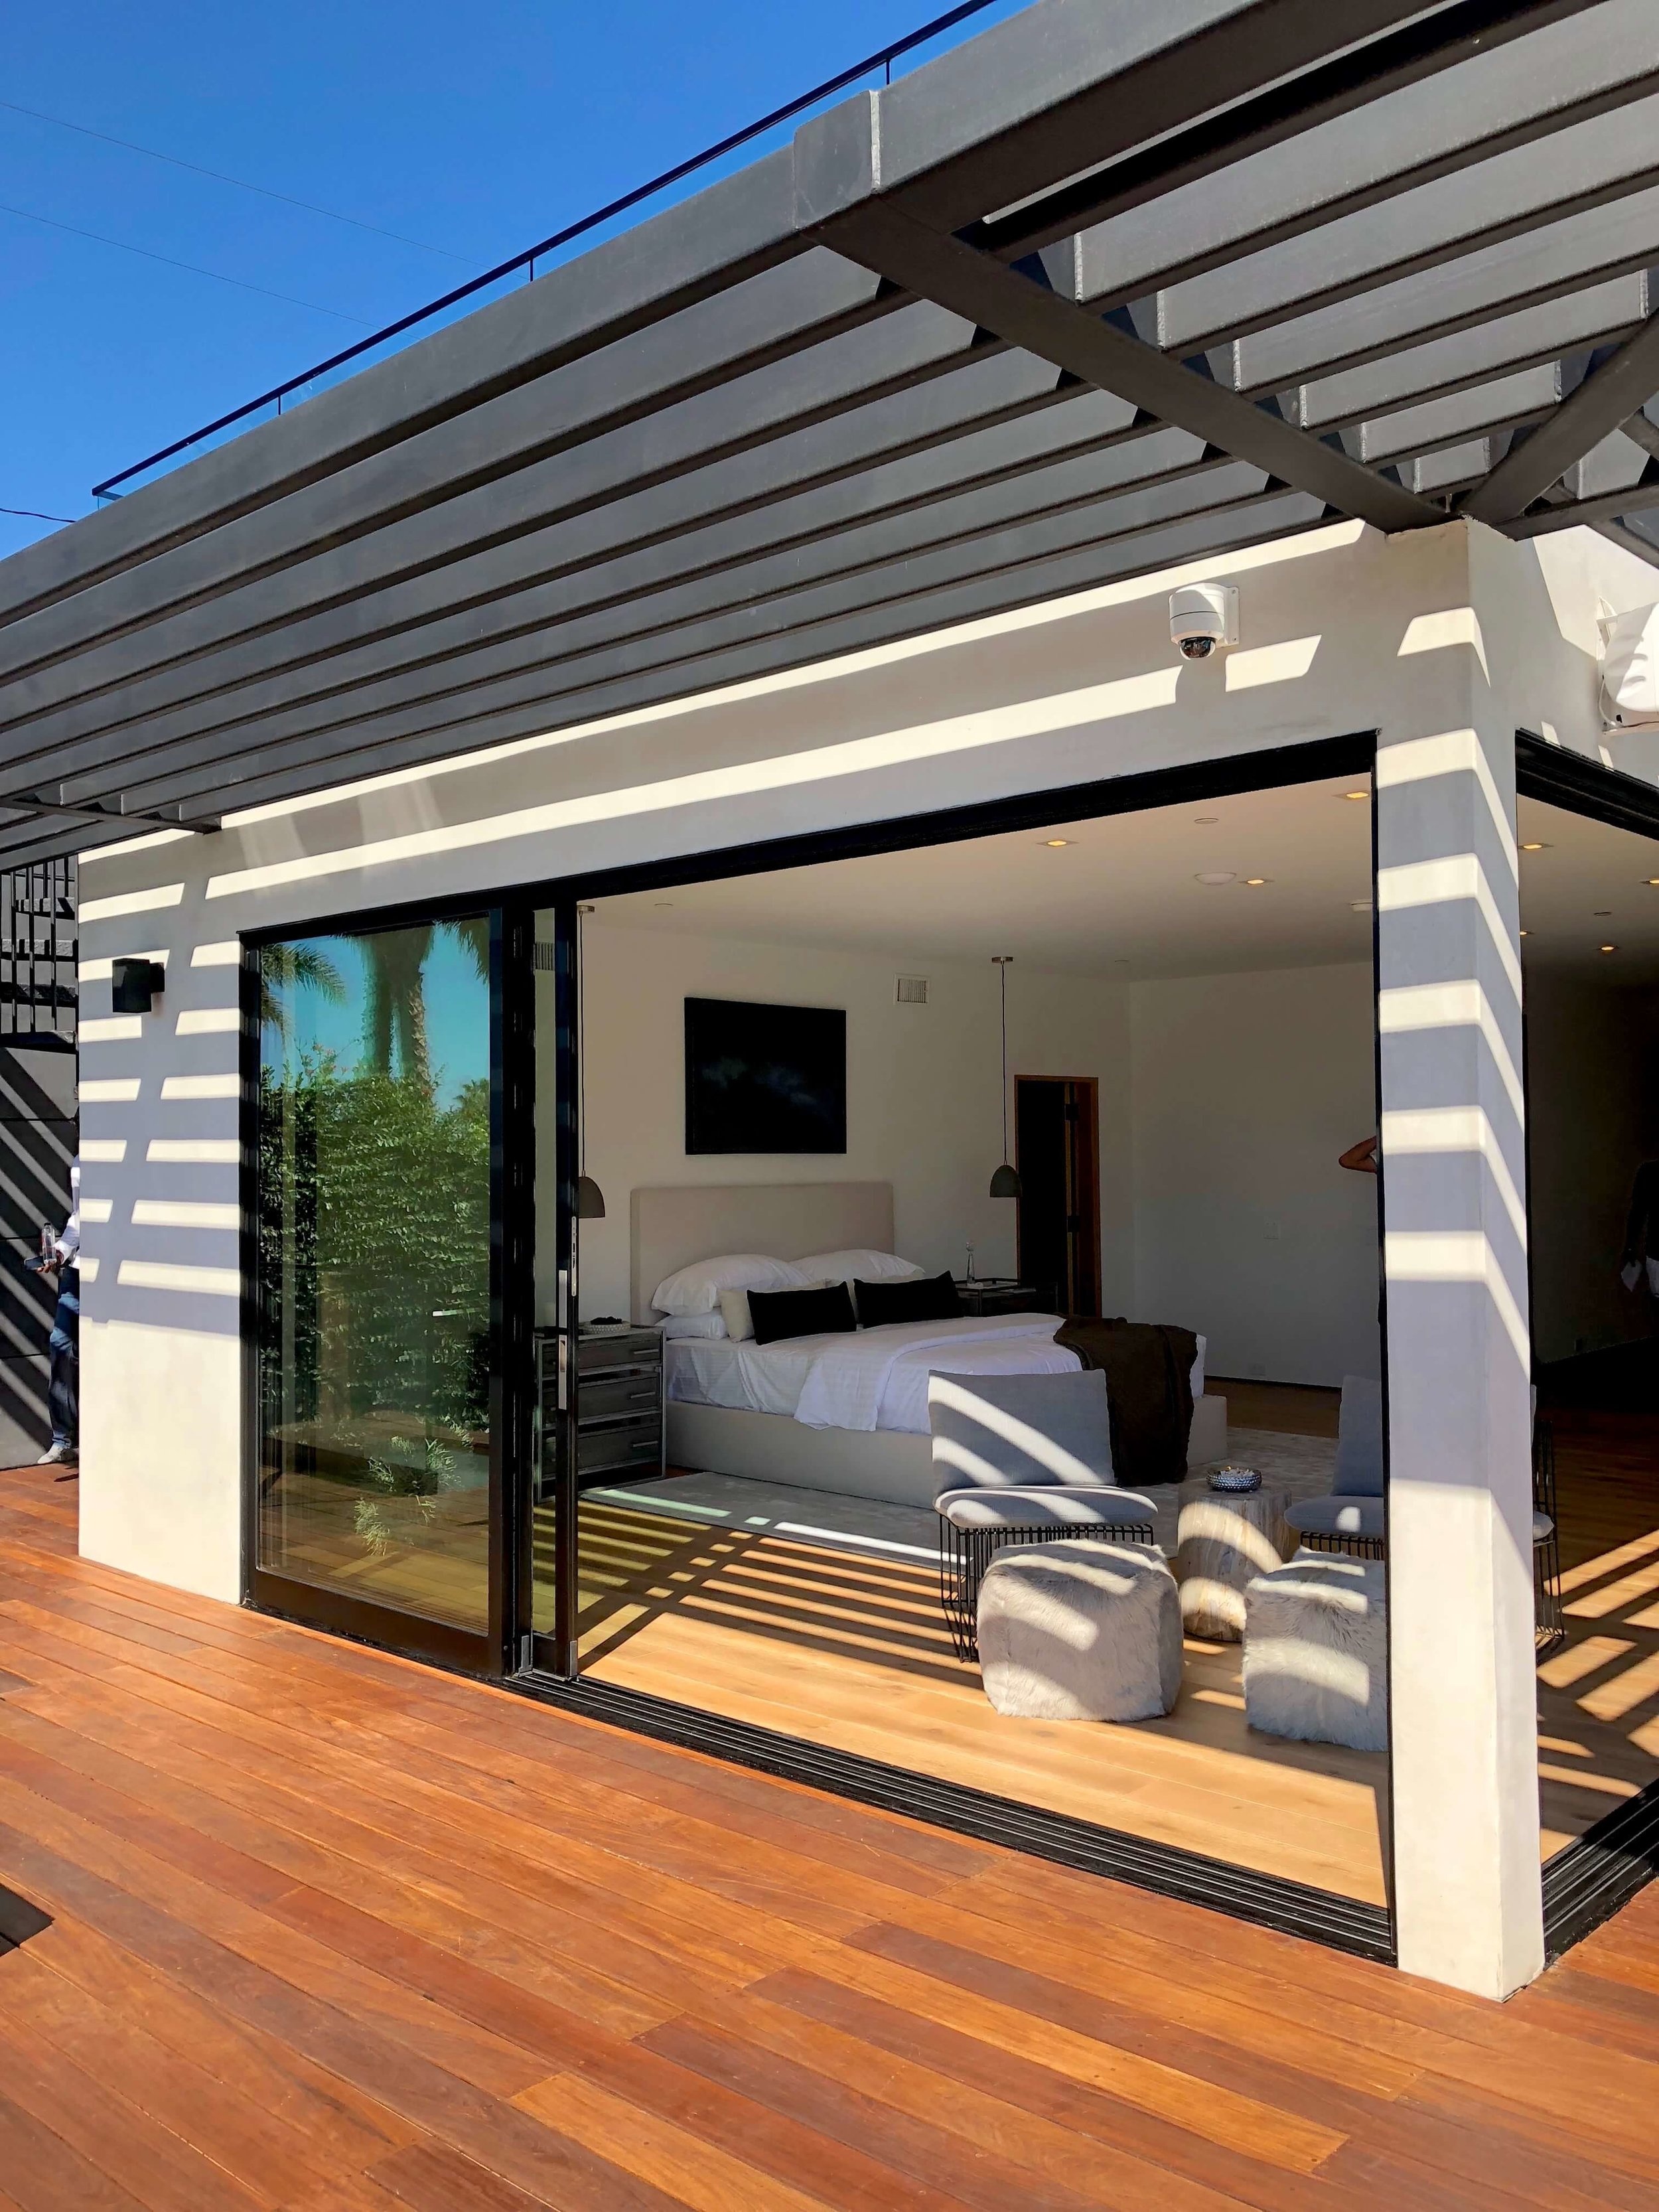 California contemporary home, Dwell on Design's Fall Home Tour, Designer: Vitus Matare #pergola #slidingdoors